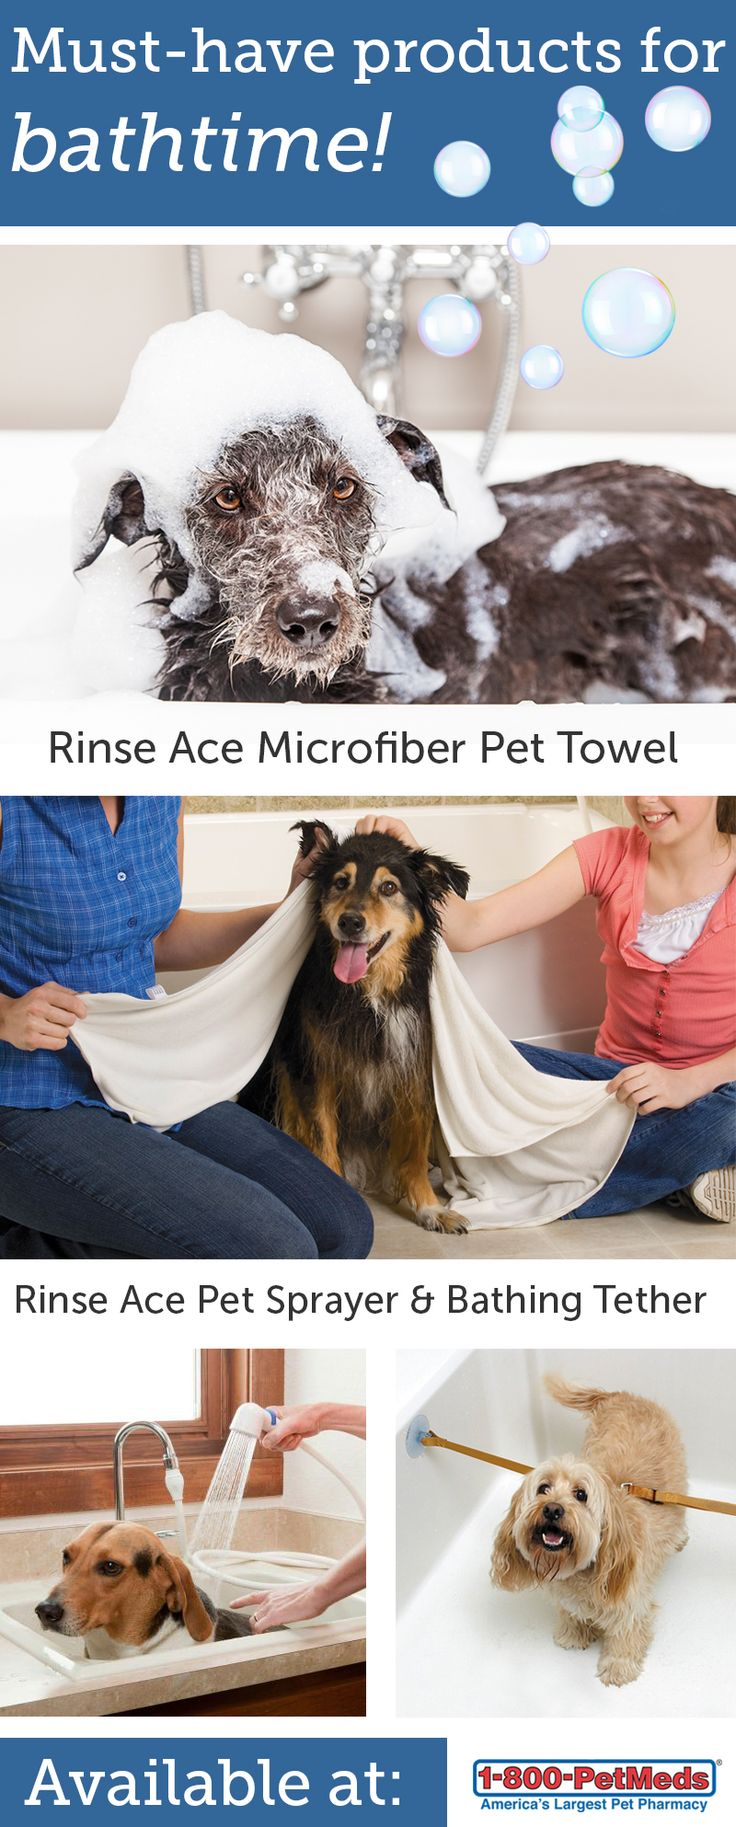 30 best dogs dogs dogs images on pinterest doggies dogs and fur make bath time a breeze with these handy rinse ace products pet sprayer super absorbent microfiber pet towel and pet bathing tethers solutioingenieria Image collections